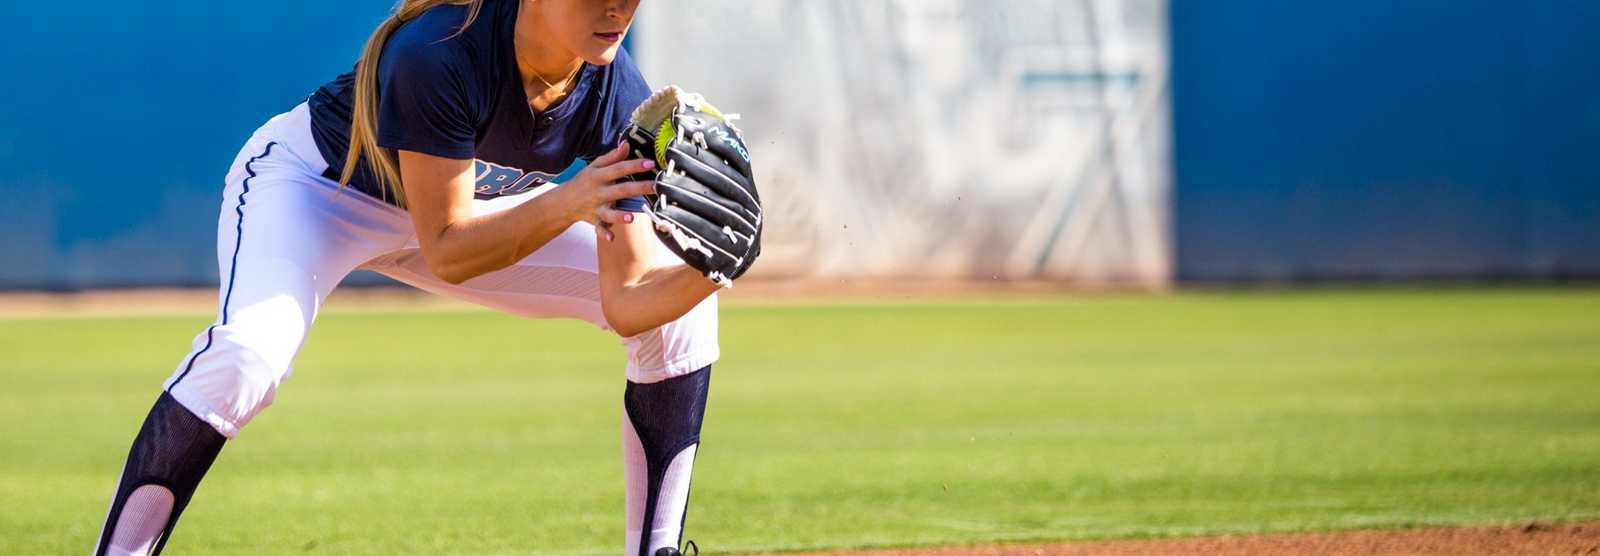 fastpitch-softball-pants